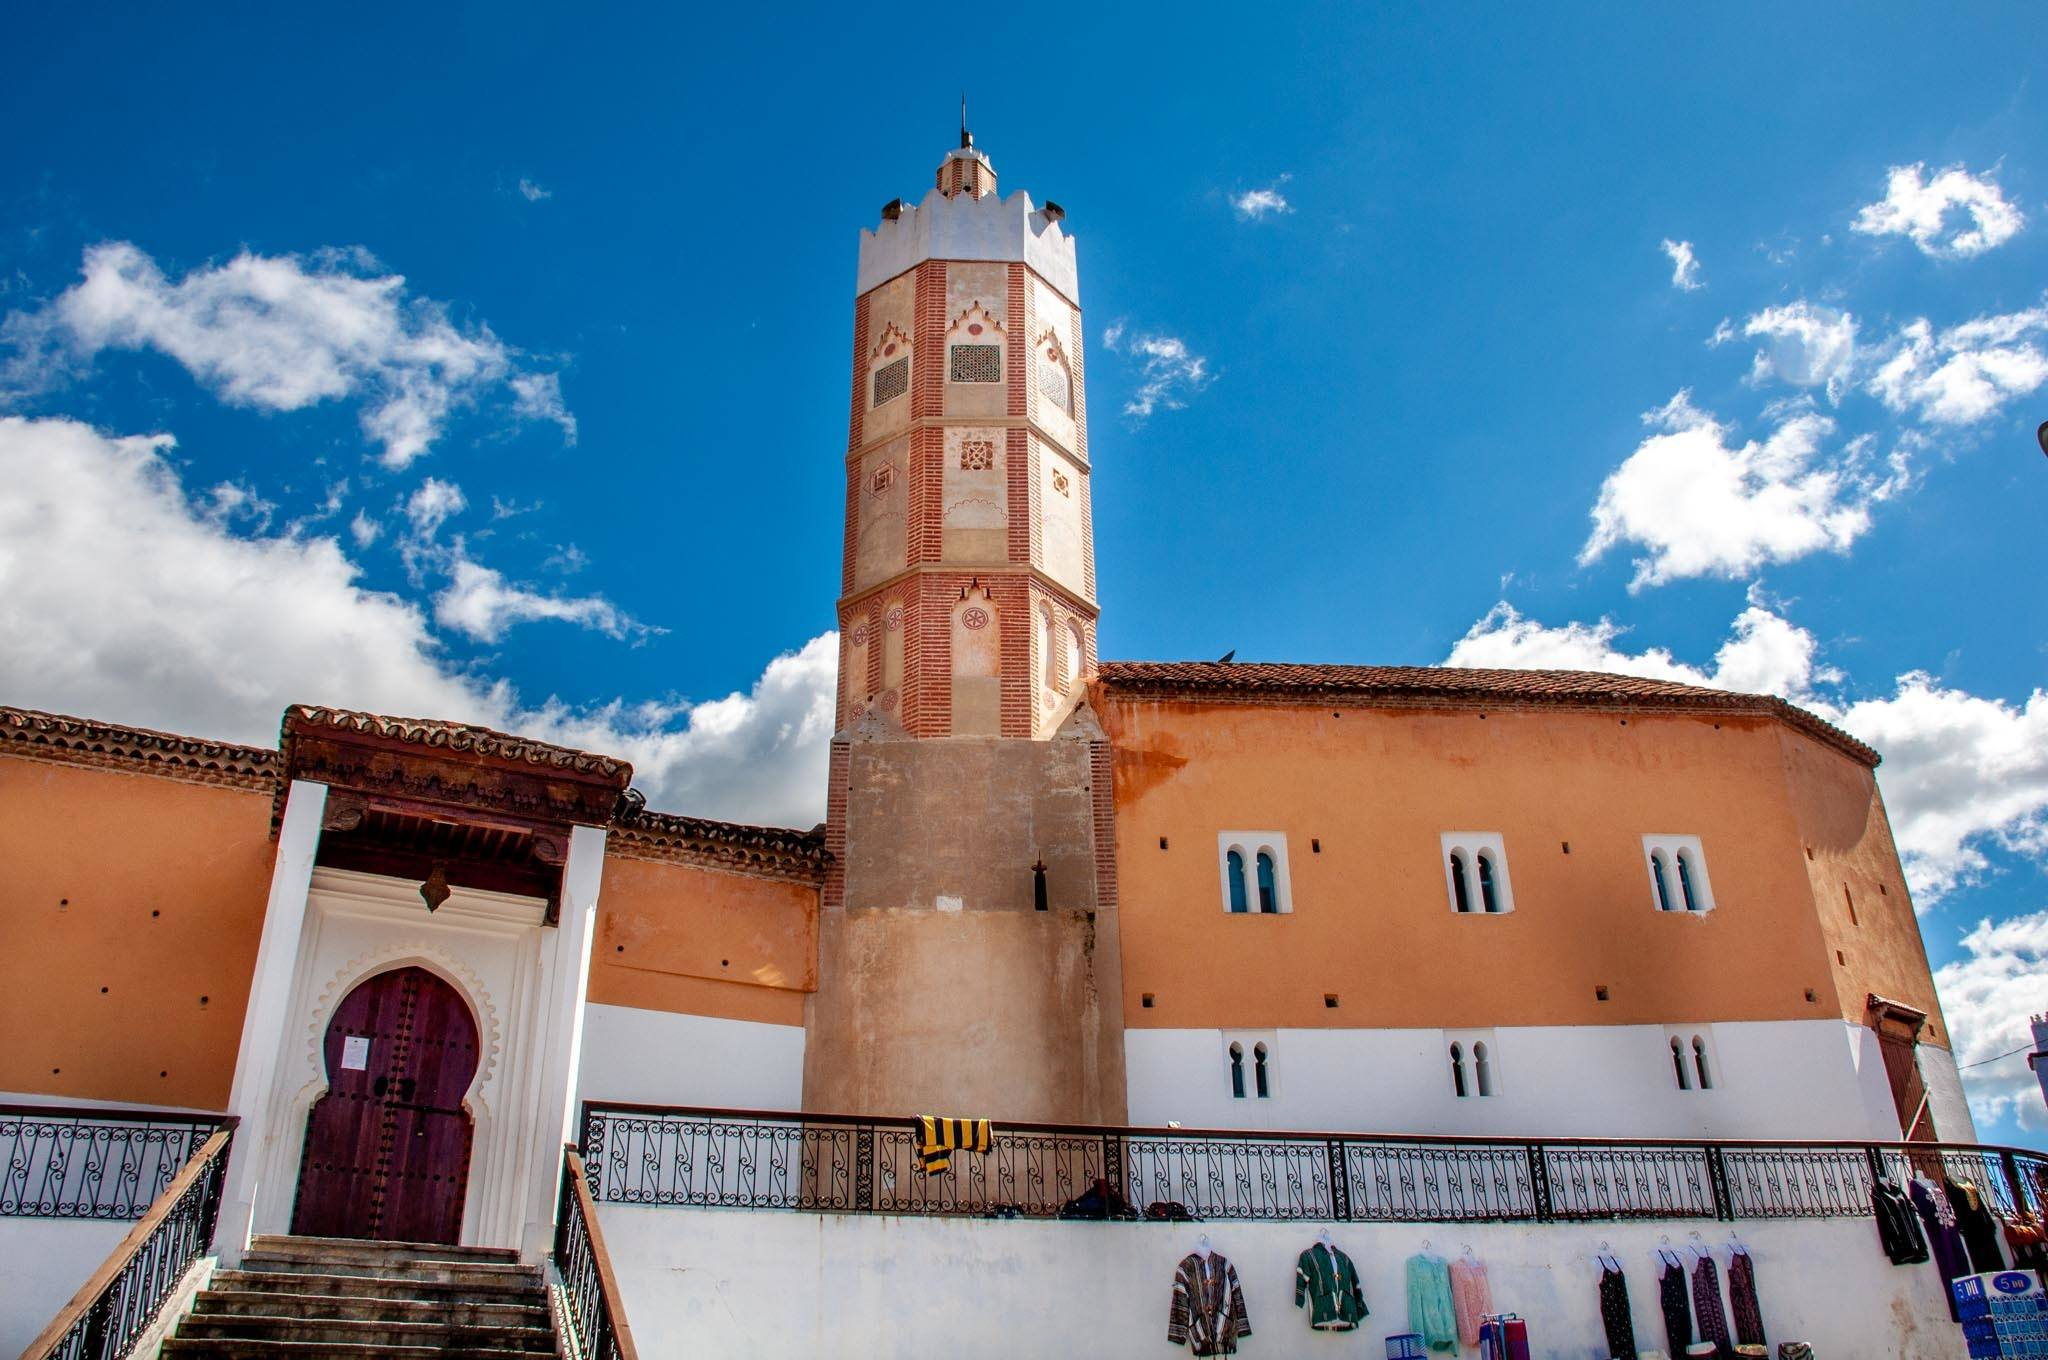 Orange building with a minaret, the Grand Mosque in Chefchaouen